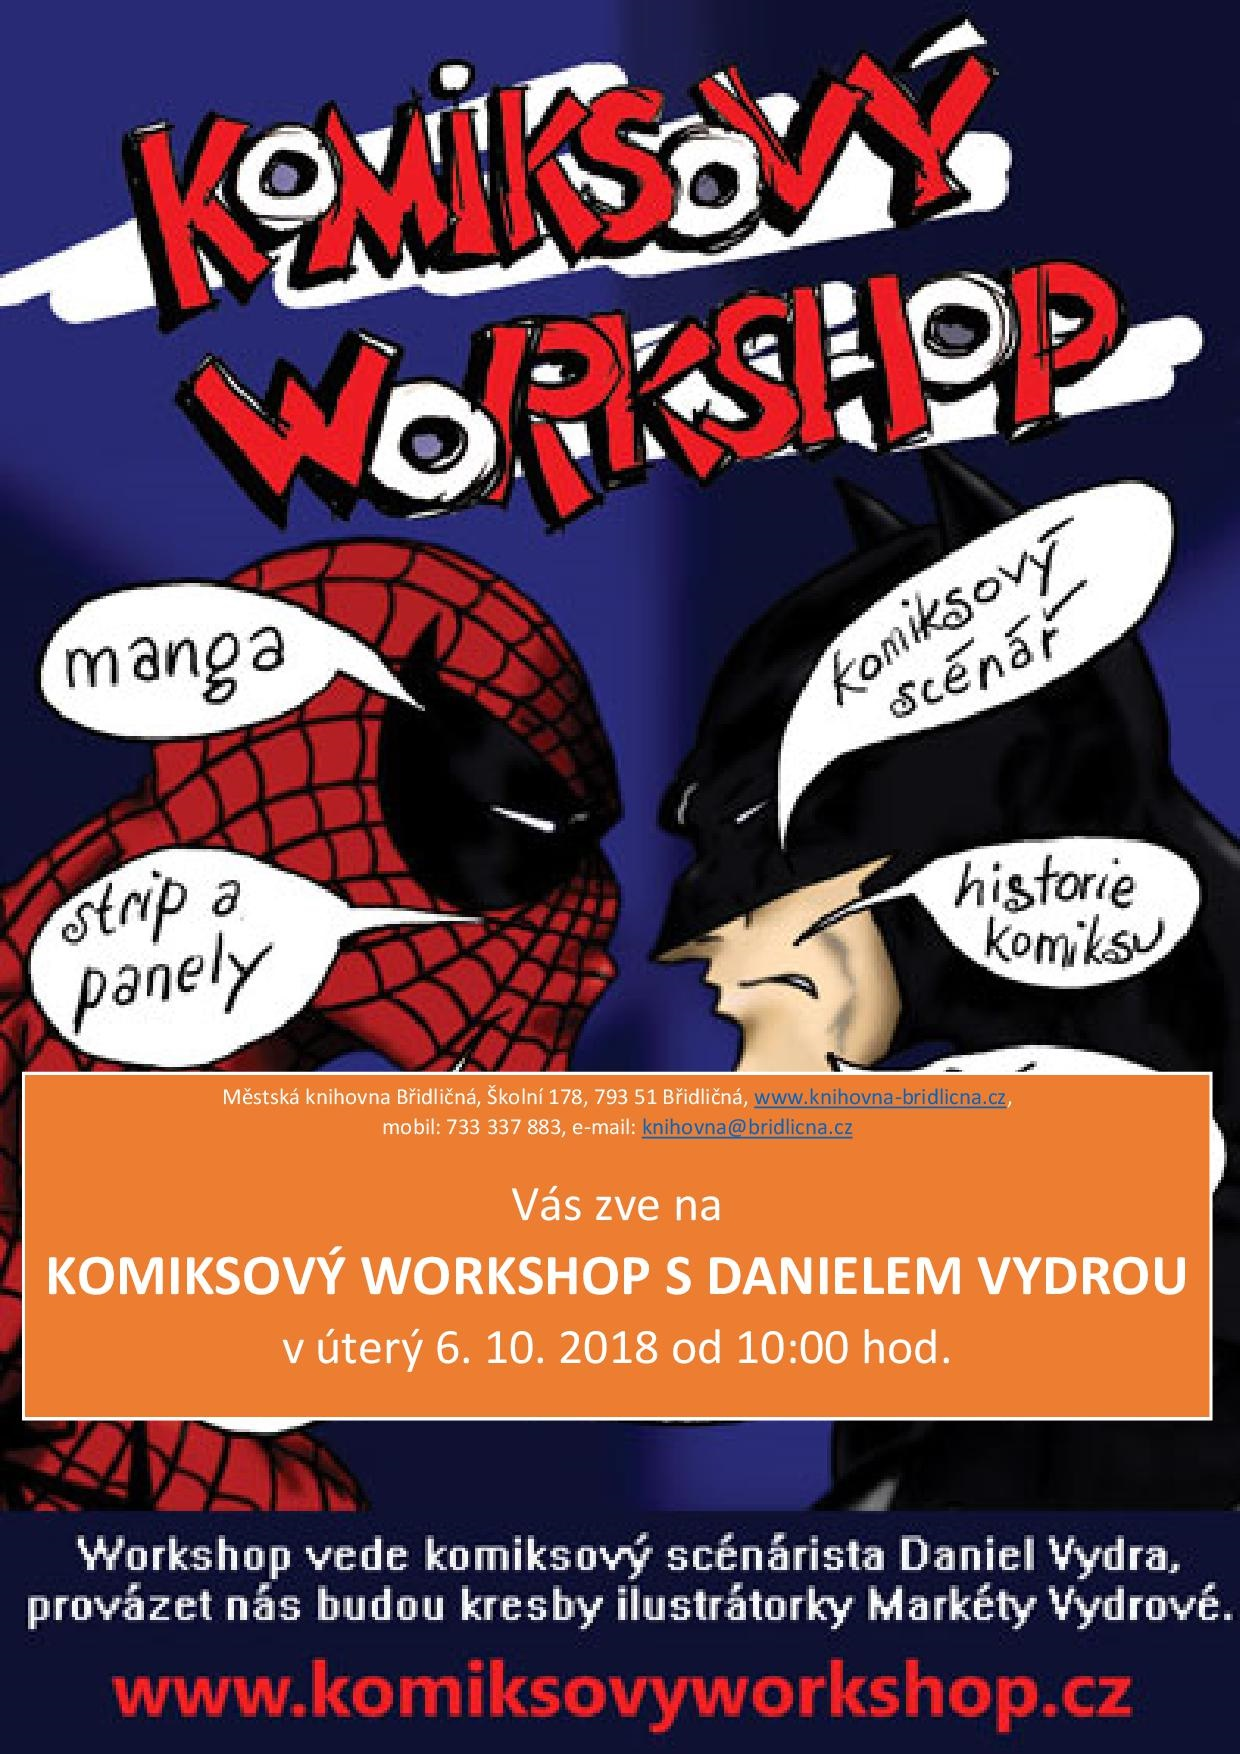 Komiksový workshop